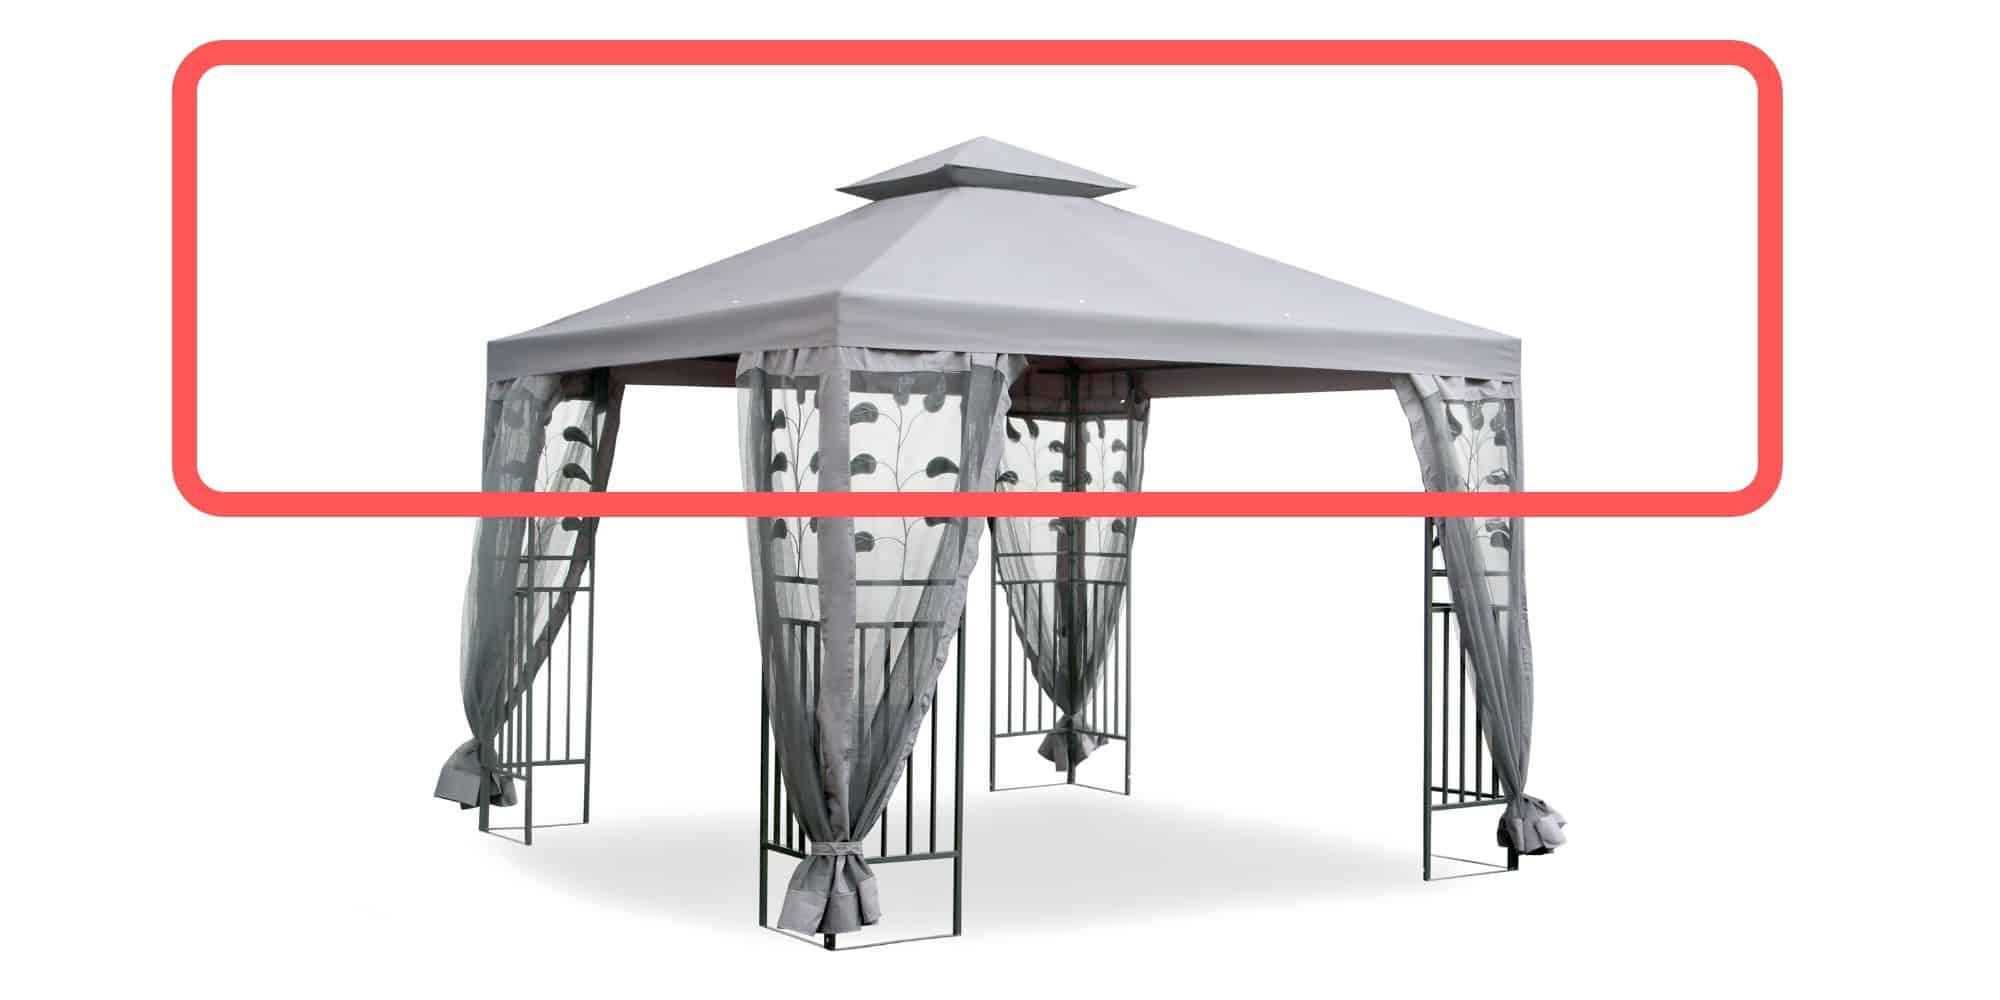 Replacement Canopy And Parts For Gazebo For 2020 In 2020 Rustic